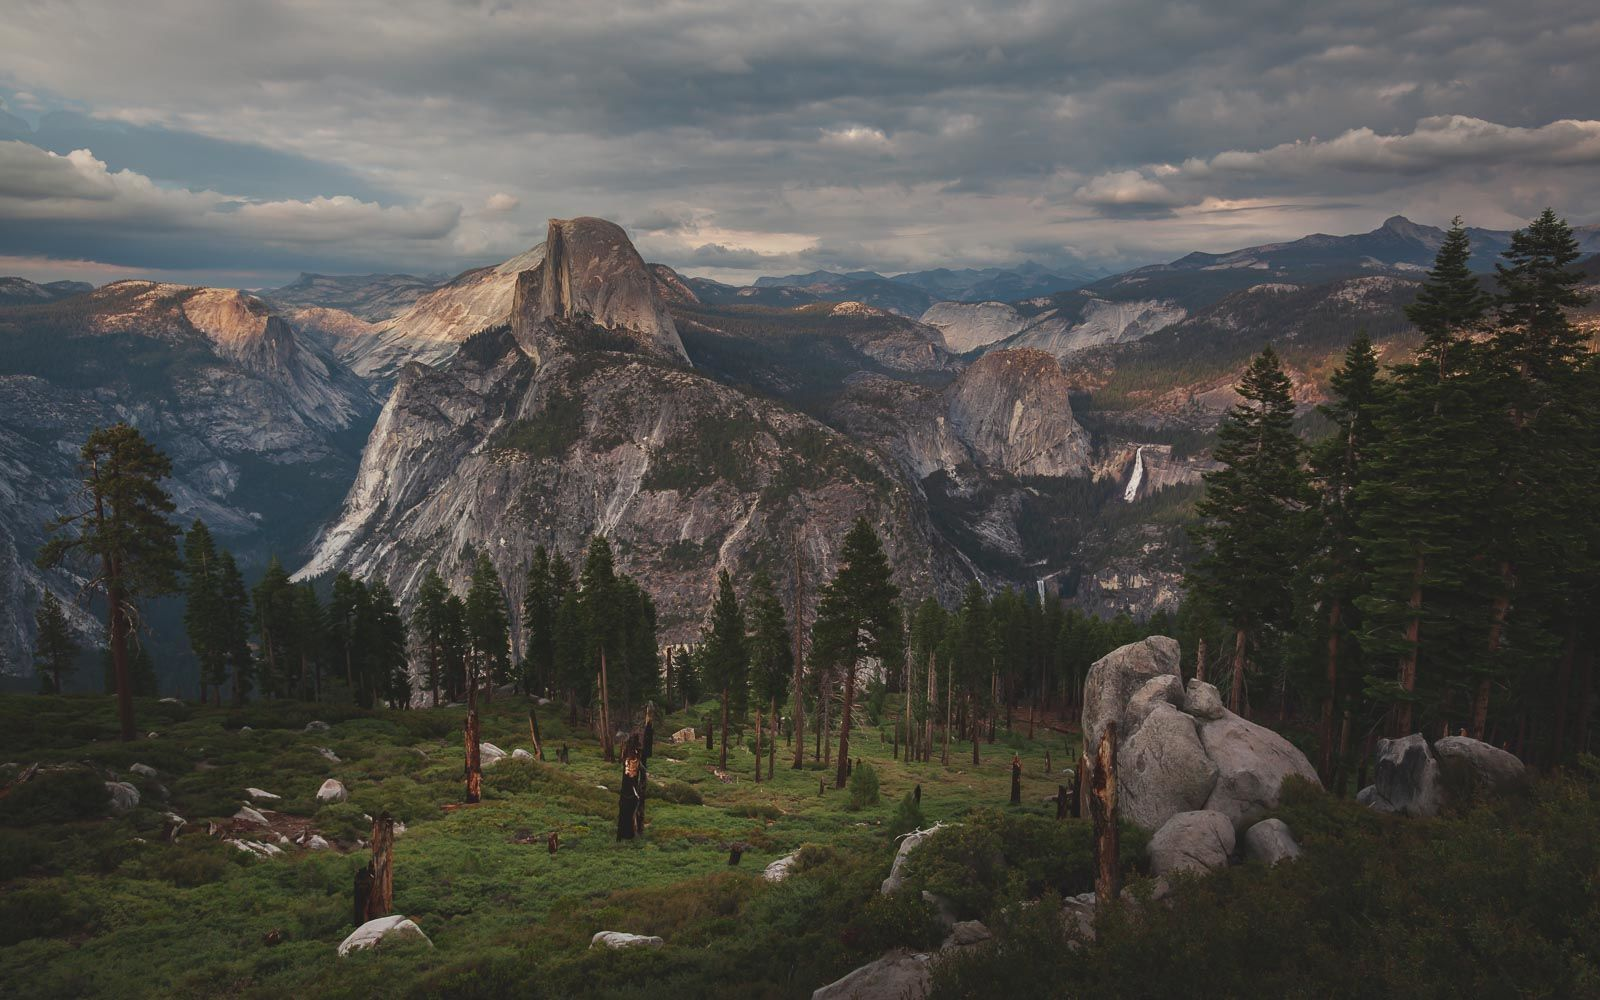 Best Way to see Yosemite National Park